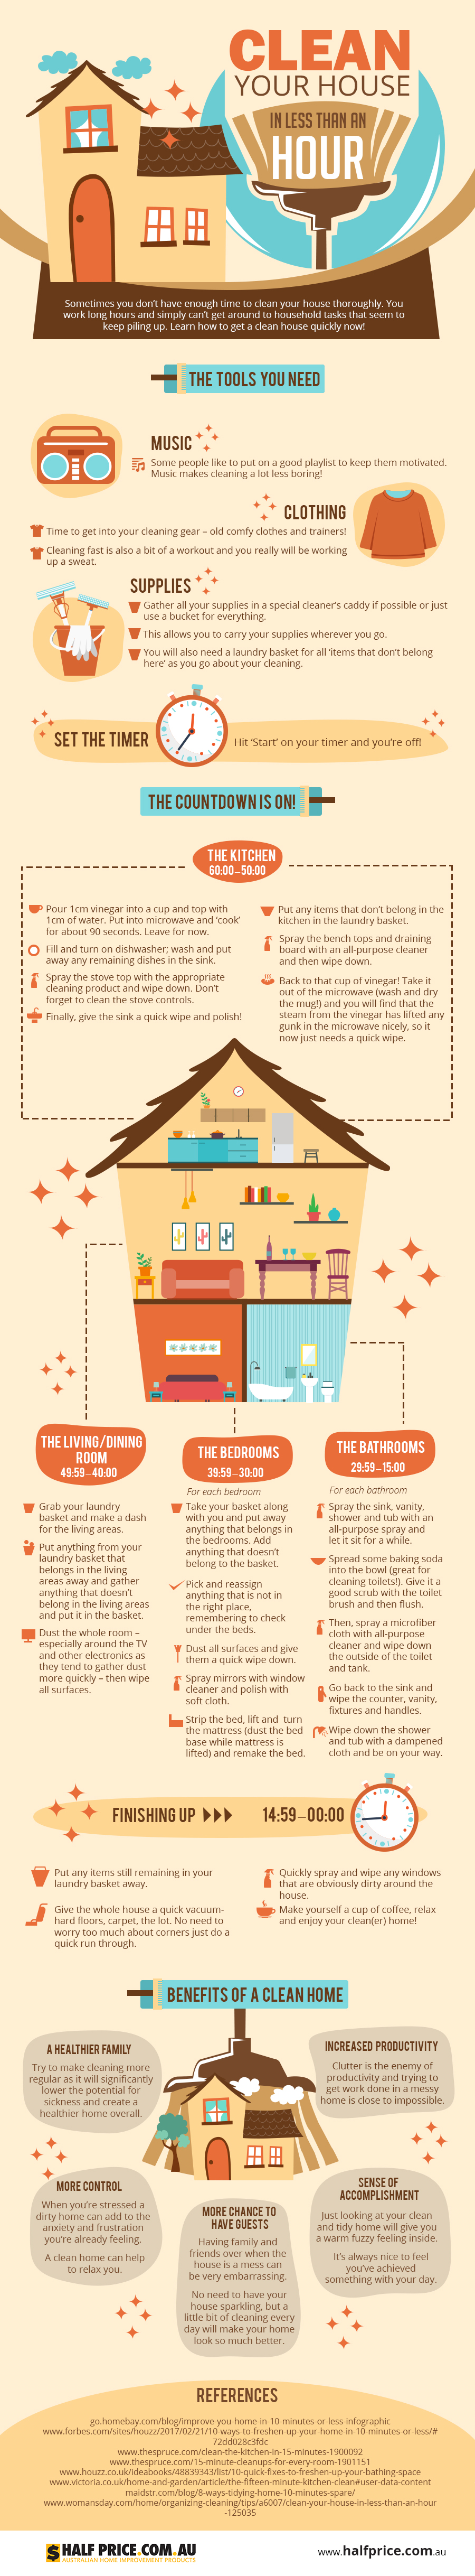 Cleaning-Your-Home-in-less-than-an-Hour.jpg